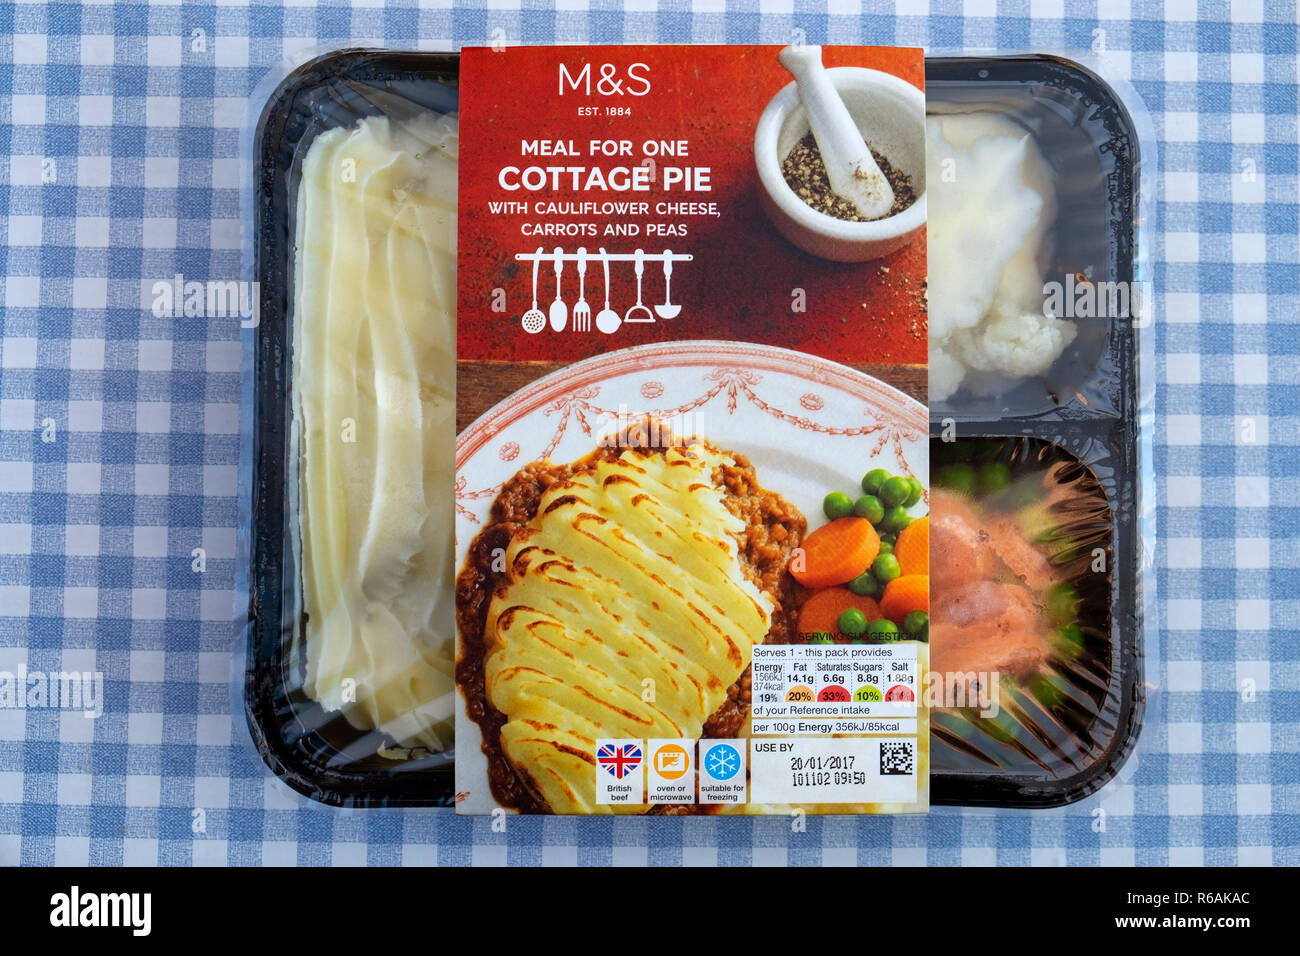 M&S meal for one cottage pie - Stock Image